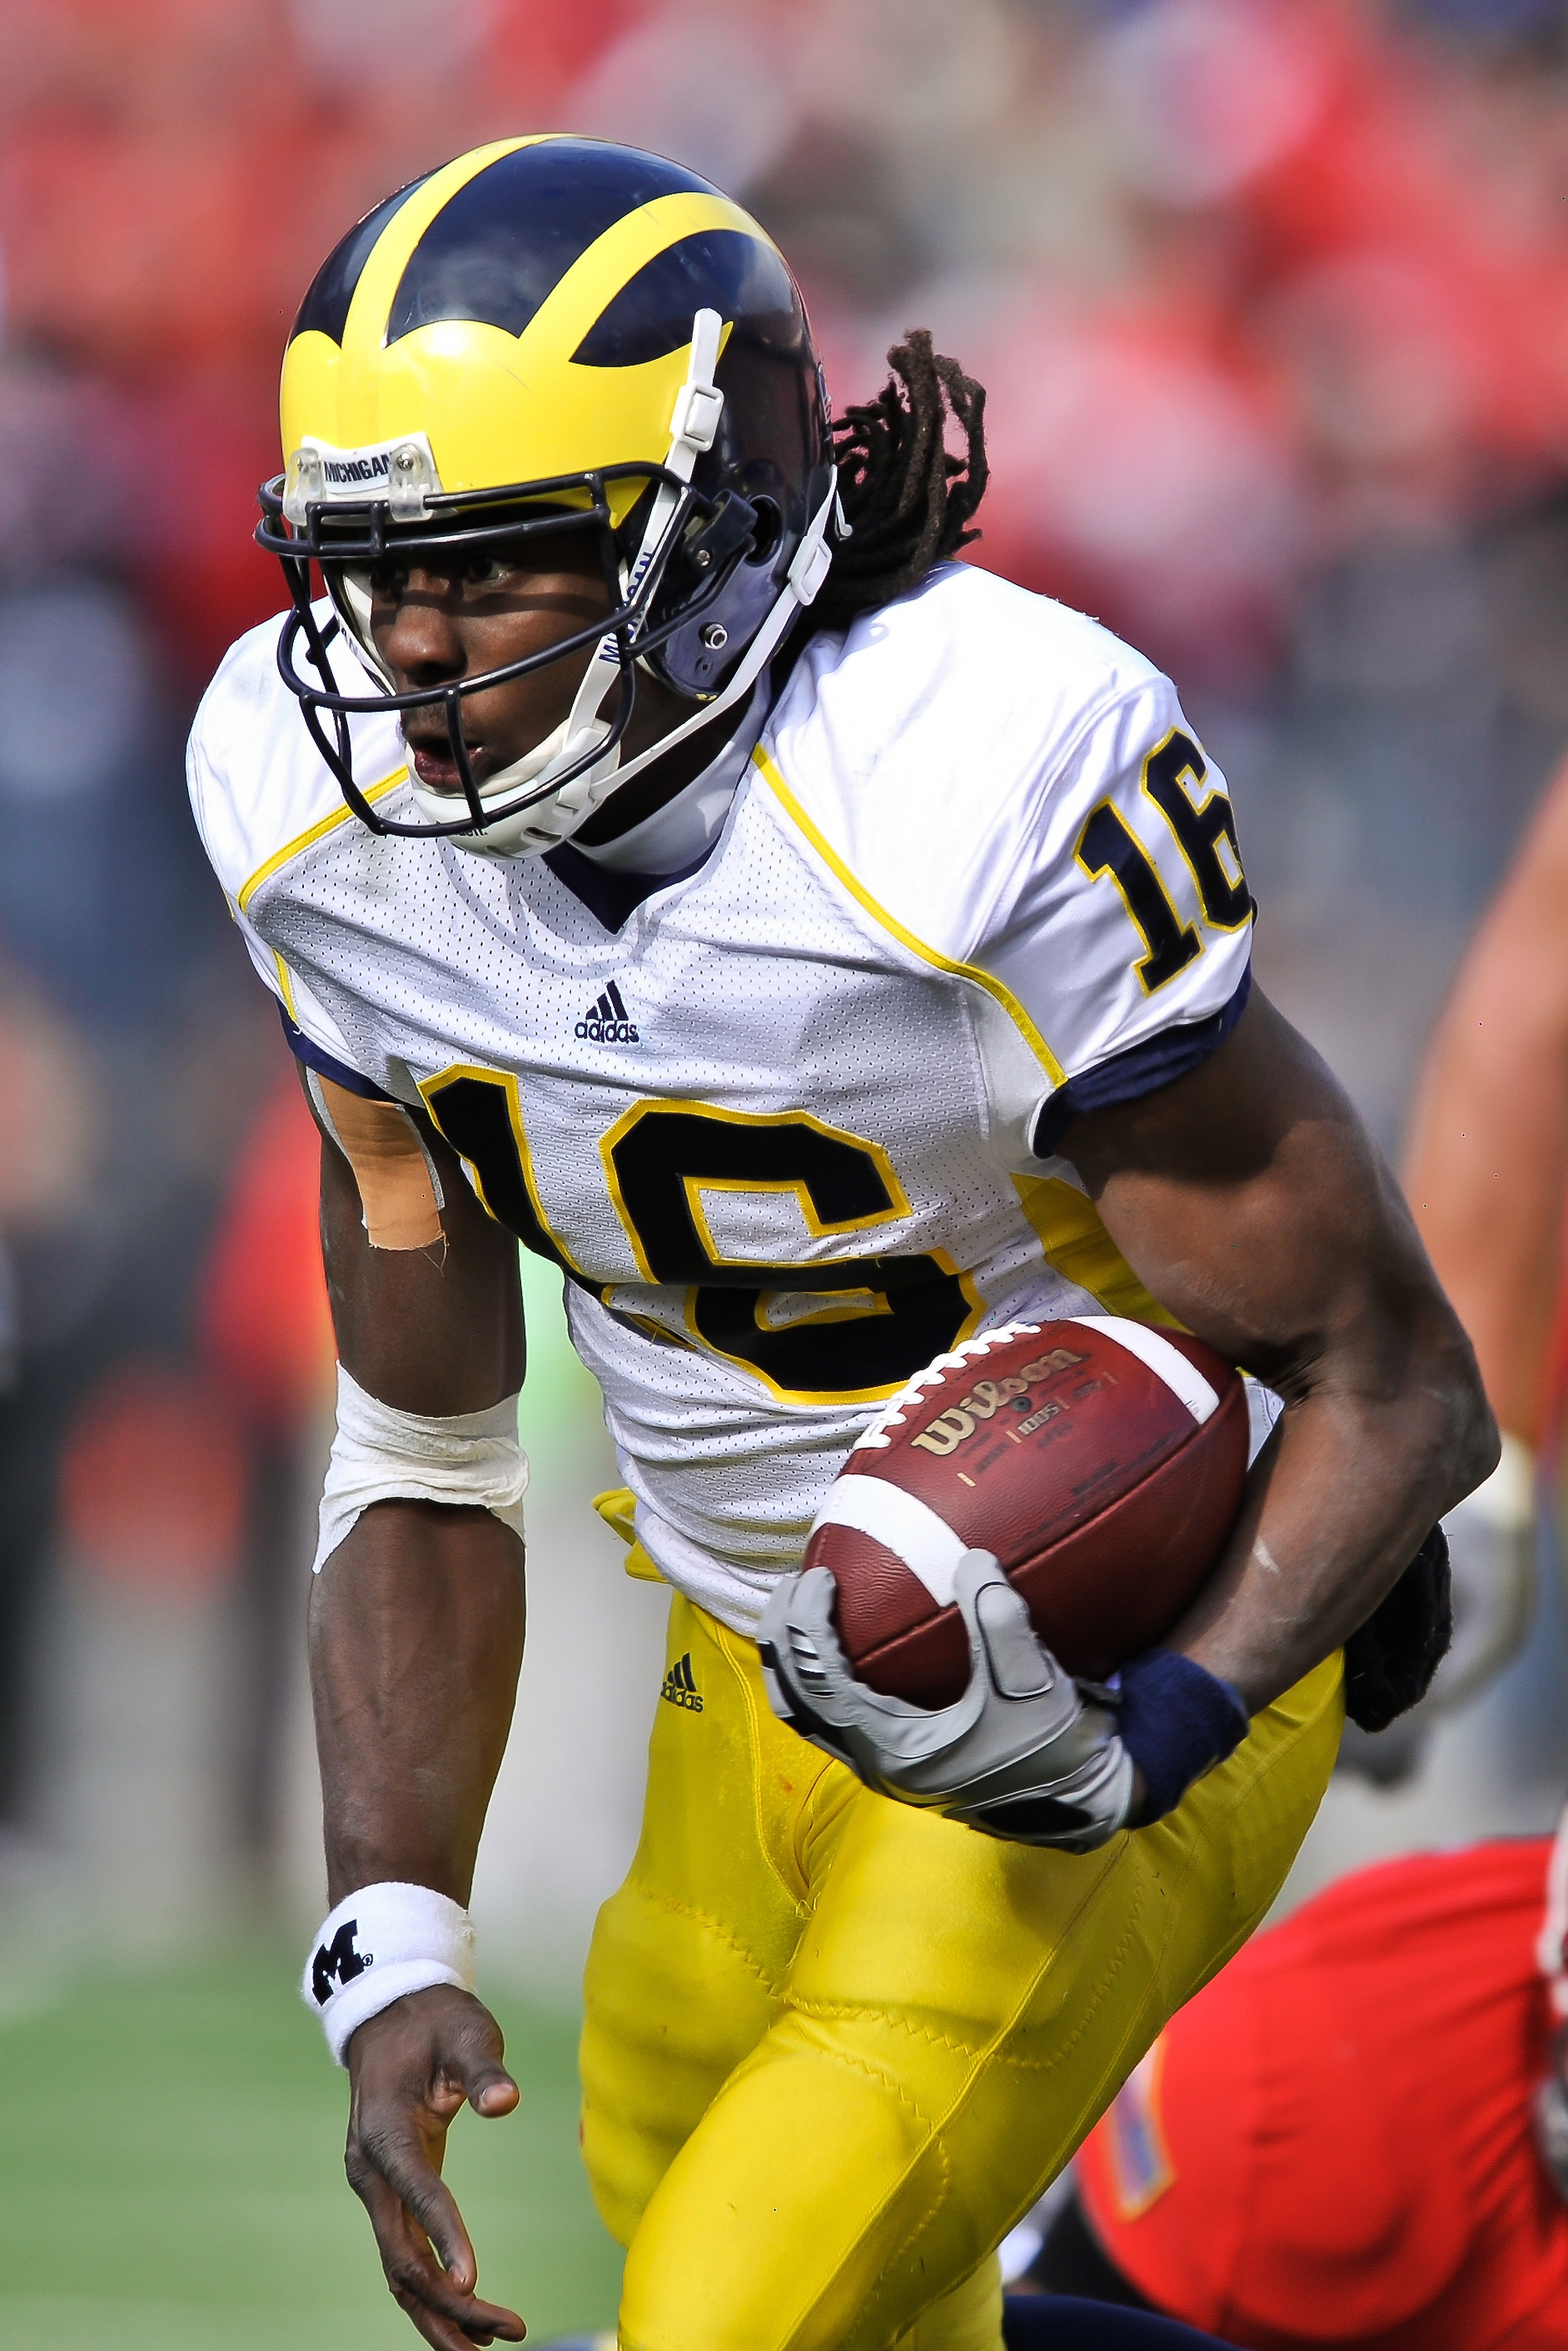 COLUMBUS, OH - NOVEMBER 27:  Quarterback Denard Robinson #16 of the Michigan Wolverines runs with the ball against the Ohio State Buckeyes at Ohio Stadium on November 27, 2010 in Columbus, Ohio.  (Photo by Jamie Sabau/Getty Images)